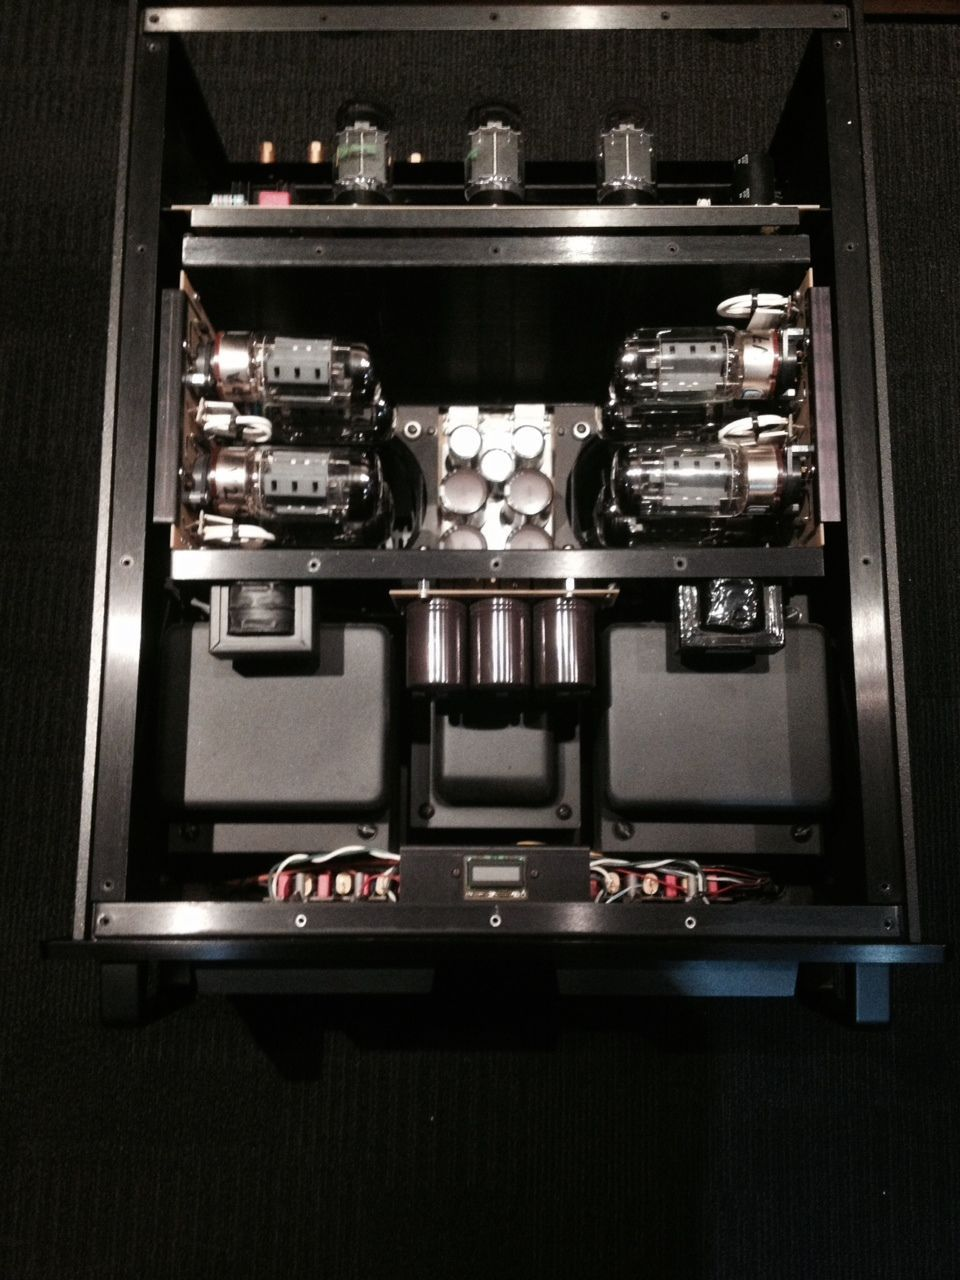 Details About Audio Research Reference 300 Mk2 Valve Power Amps X2 Hifi Hifi Audio Best Home Theater System